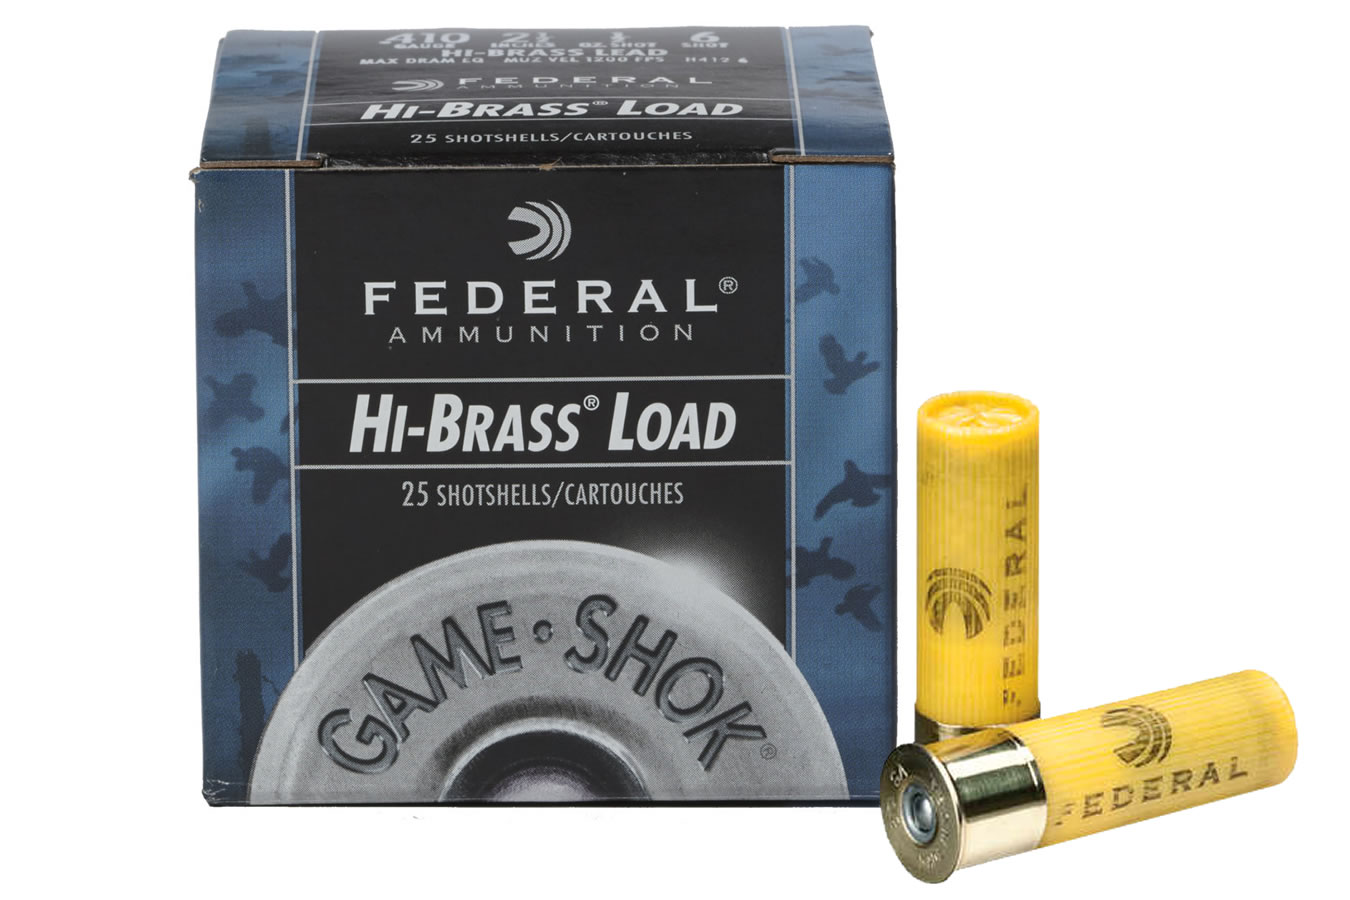 20 GA 2-3/4 IN  2-3/4 DE 1 OZ 5 GAME-SHOK HI-BRASS